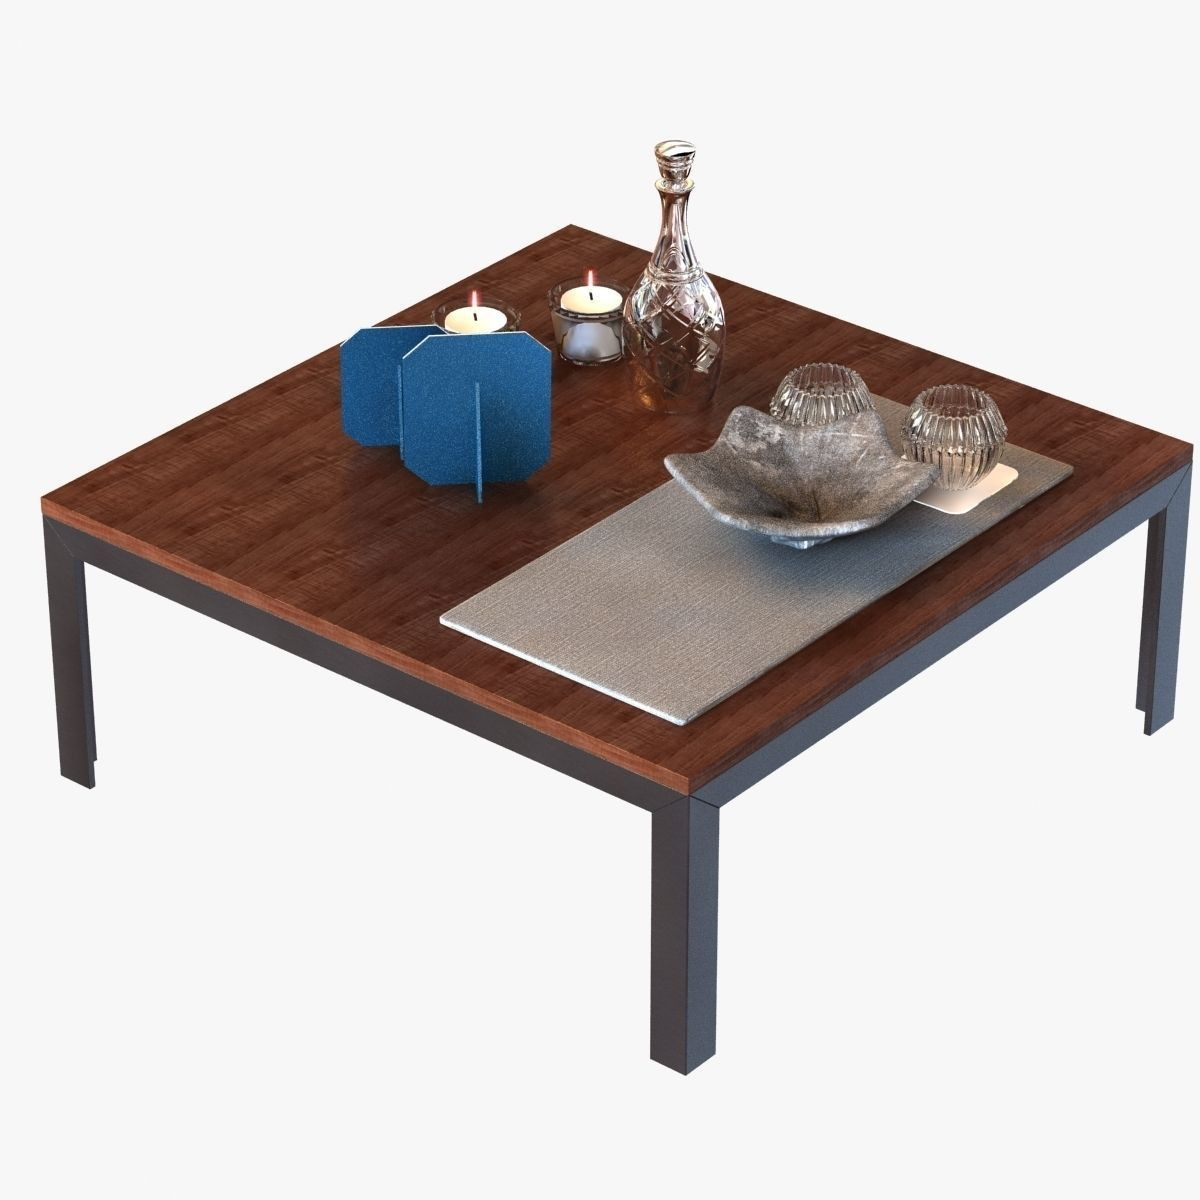 Coffee table with decor 3d model max obj 3ds fbx for Coffee table 3d model